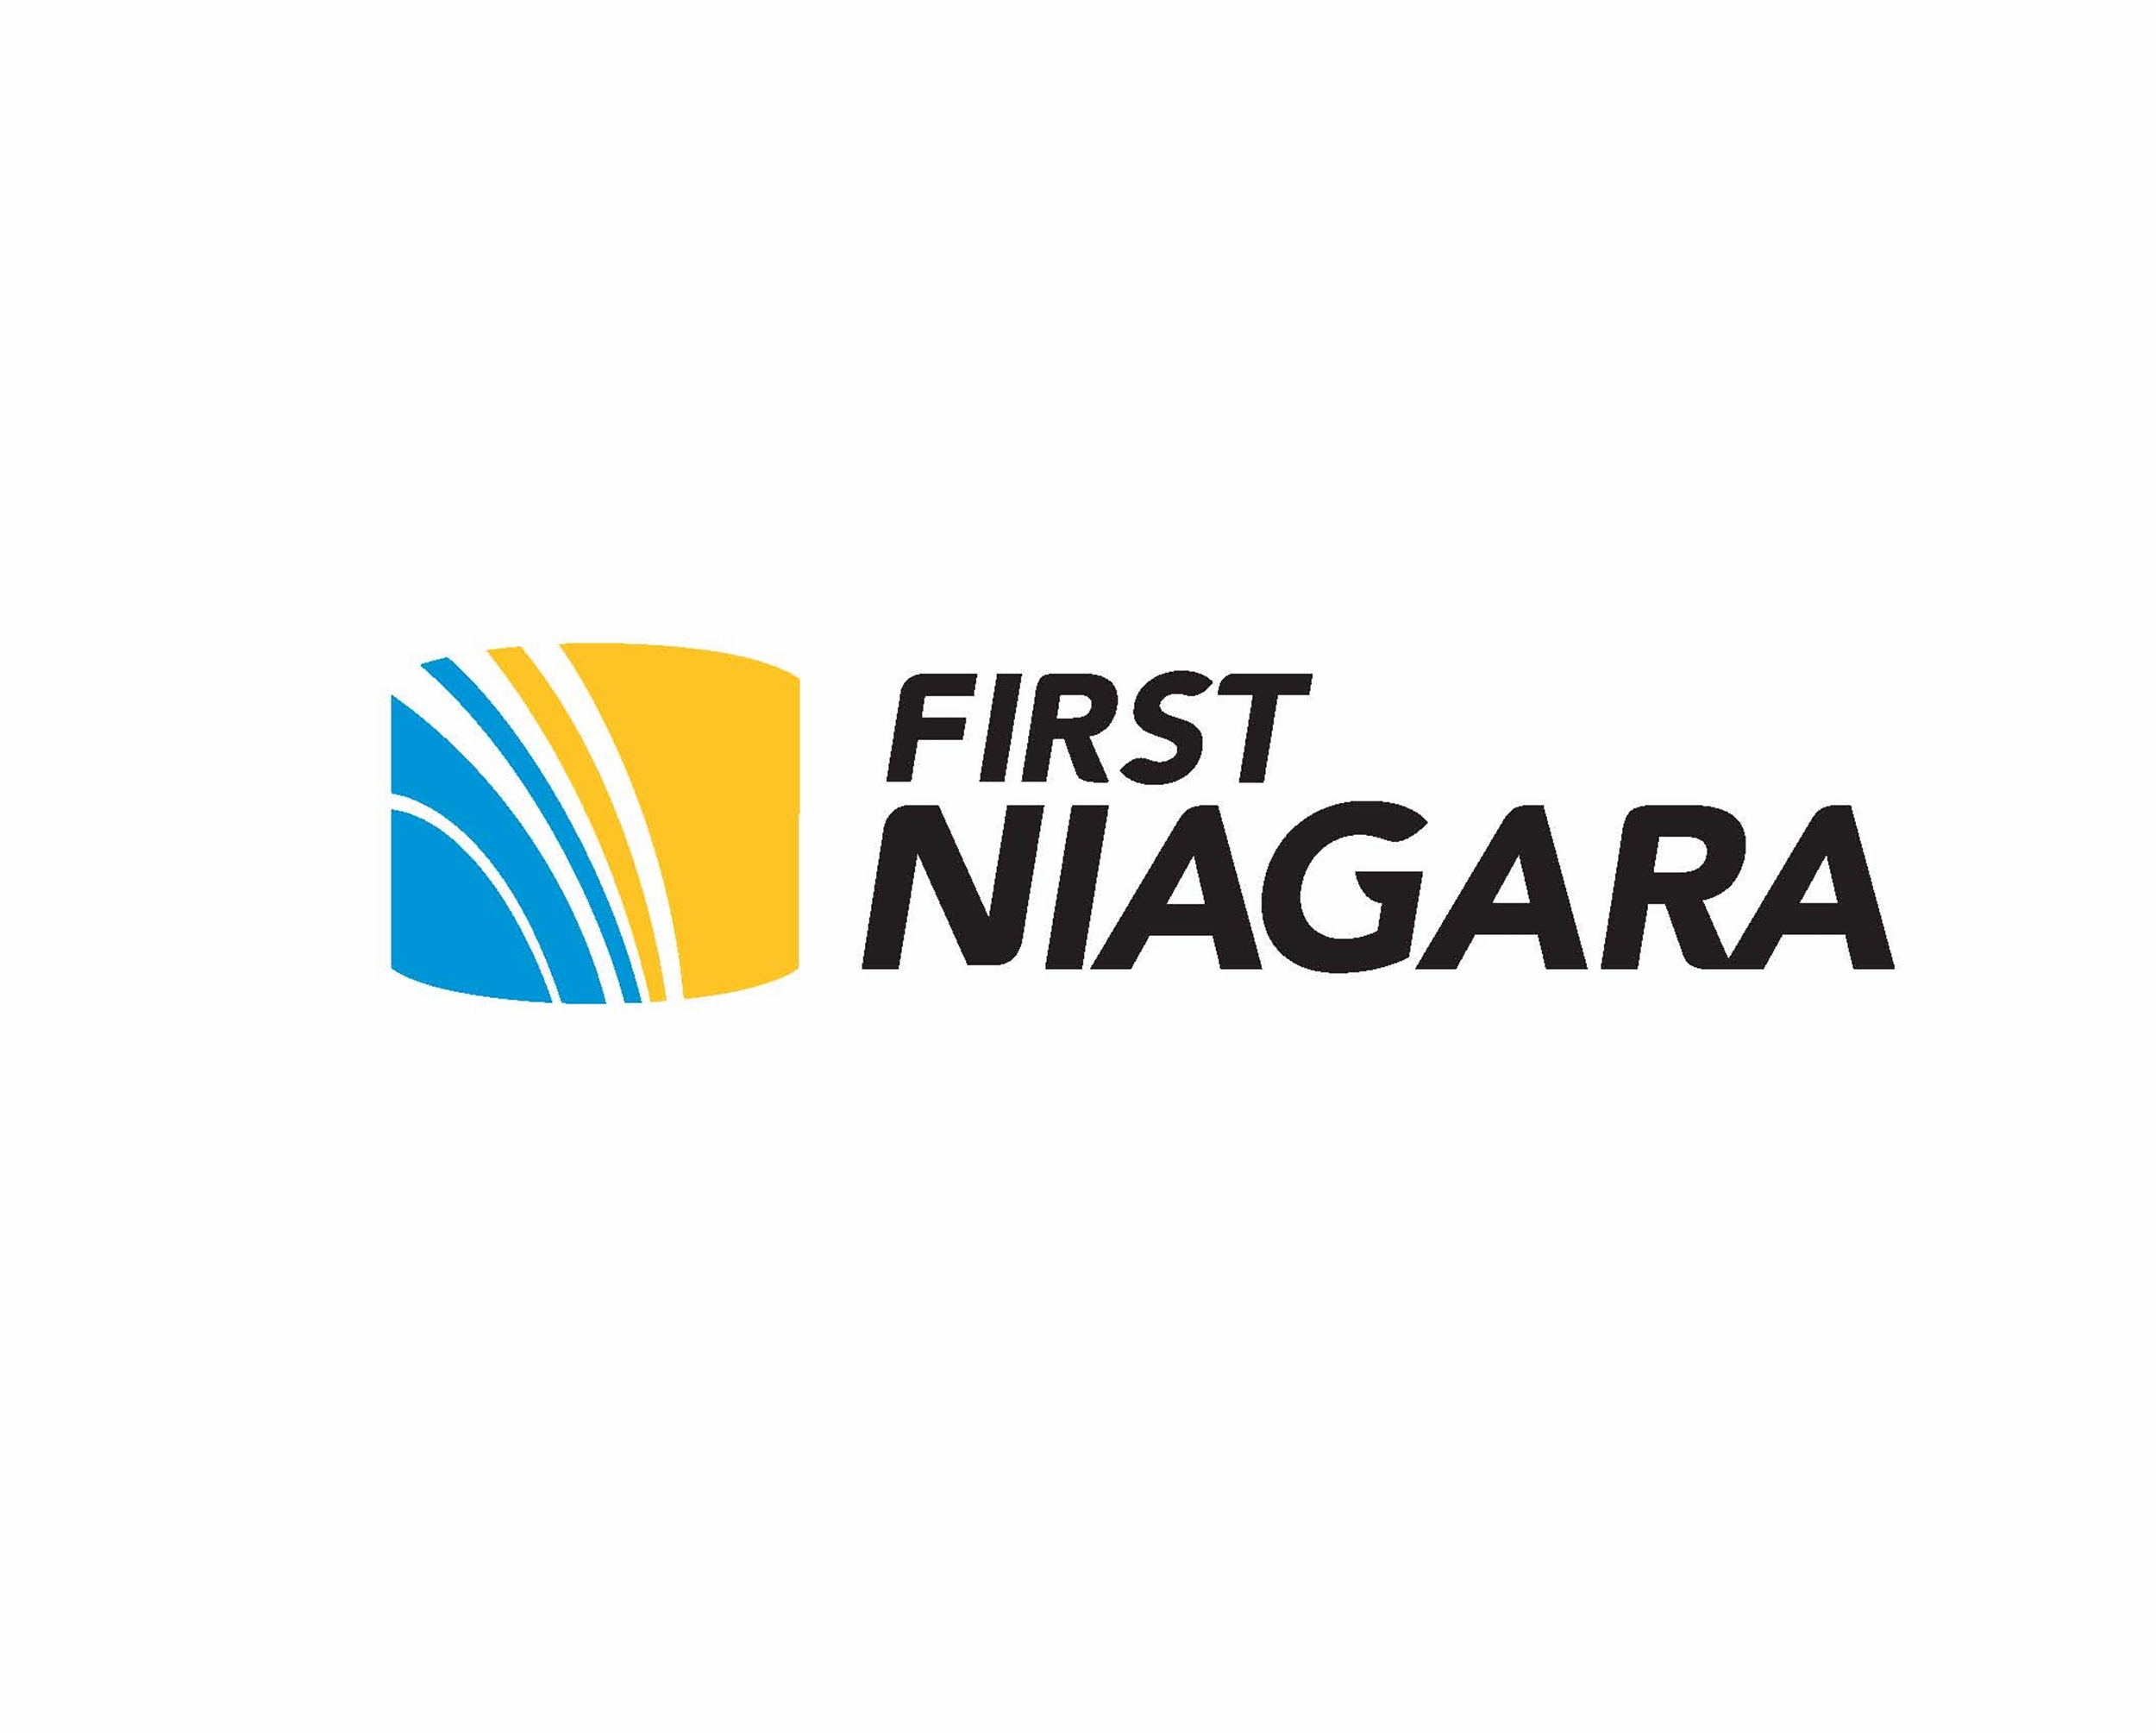 First Niagara Bank